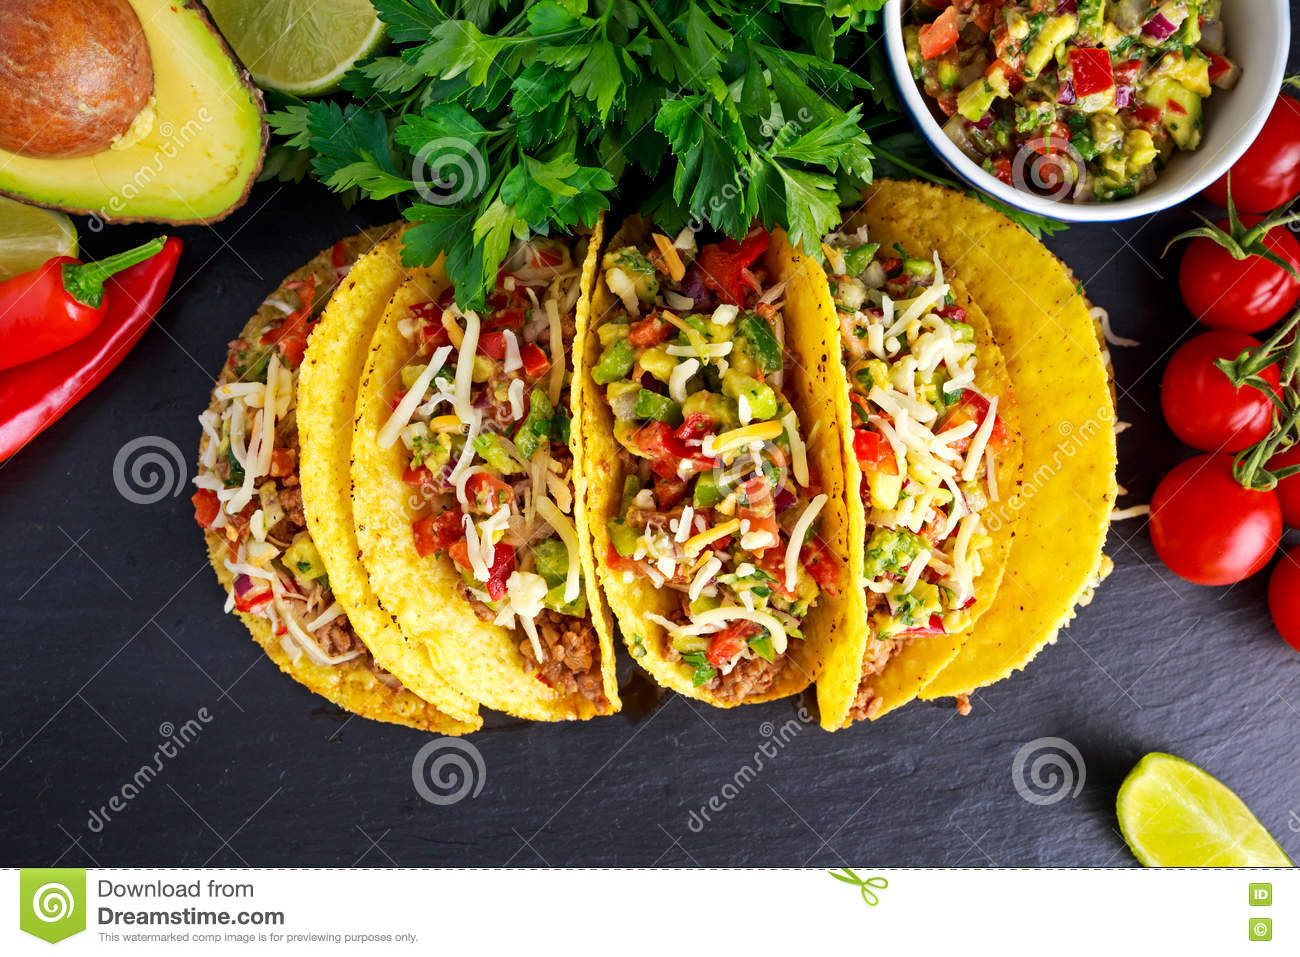 Where To Find Taco Shells For Fast Food